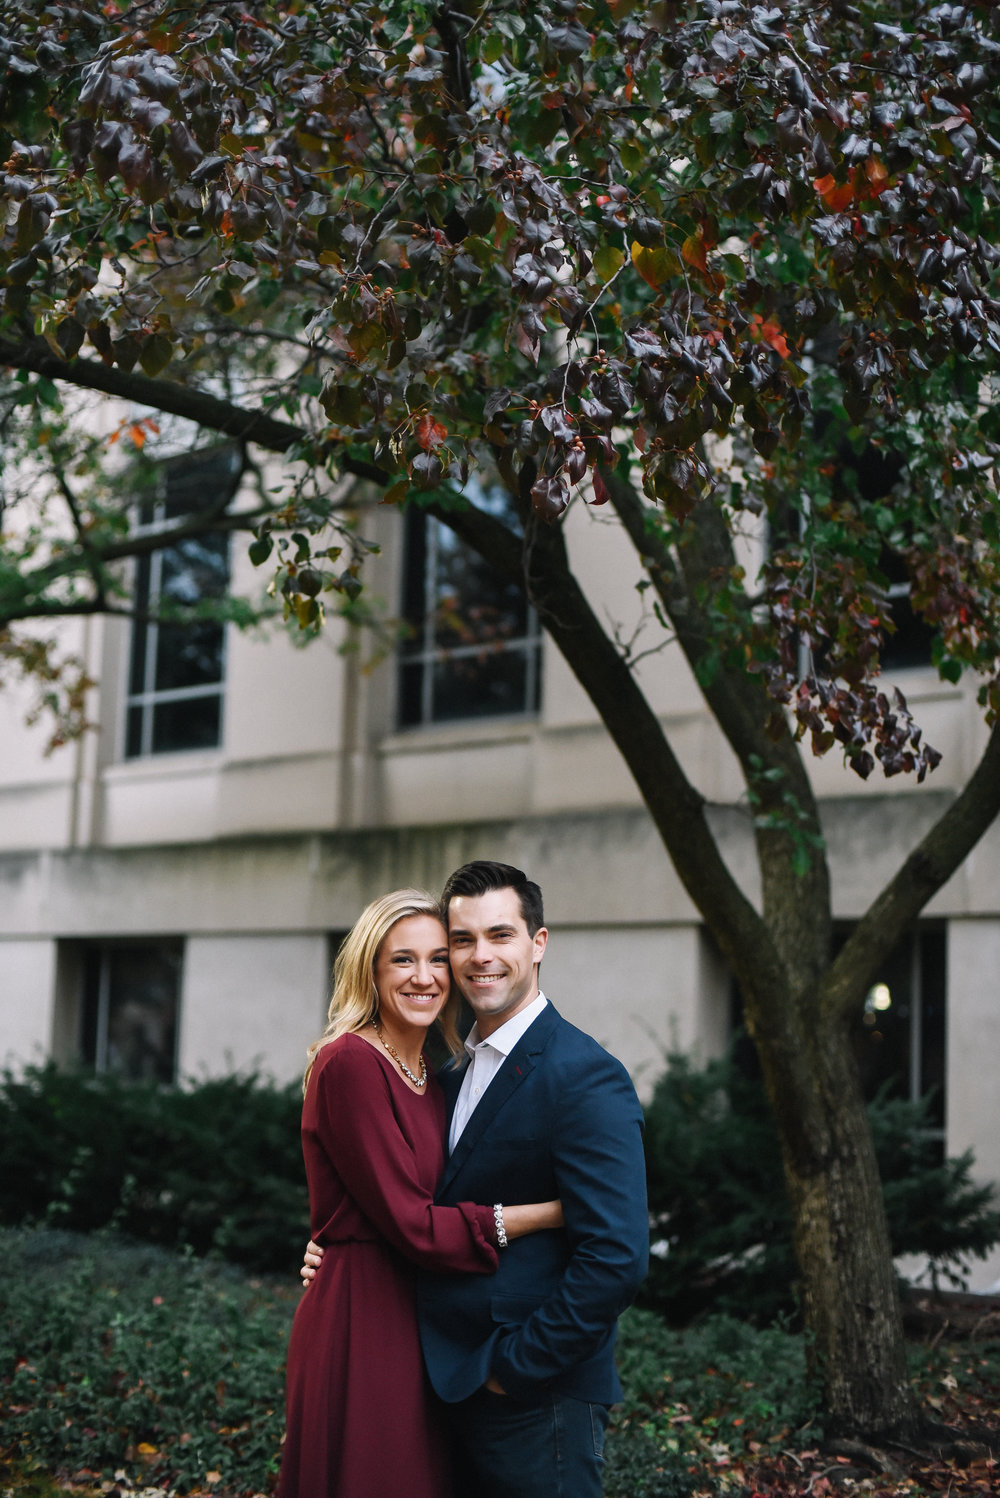 Downtown_Ann_Arbor_Arboretum_Engagement_Photos-19.jpg